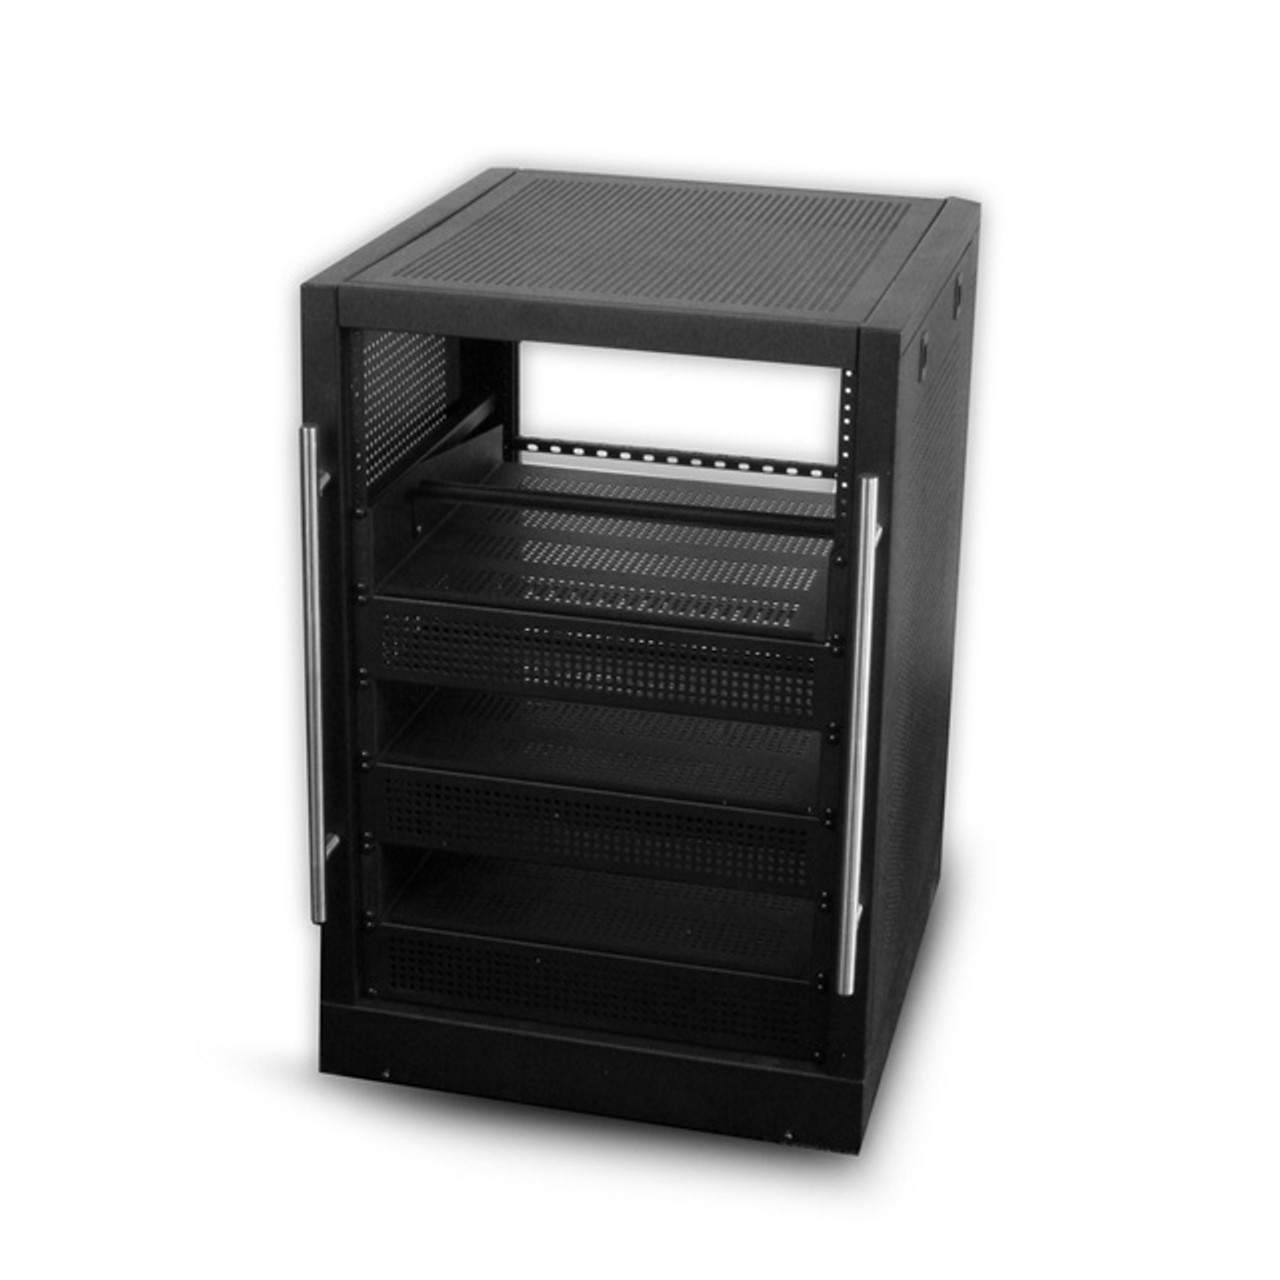 Portable Home Theater Rack 3' 16U with Shelves